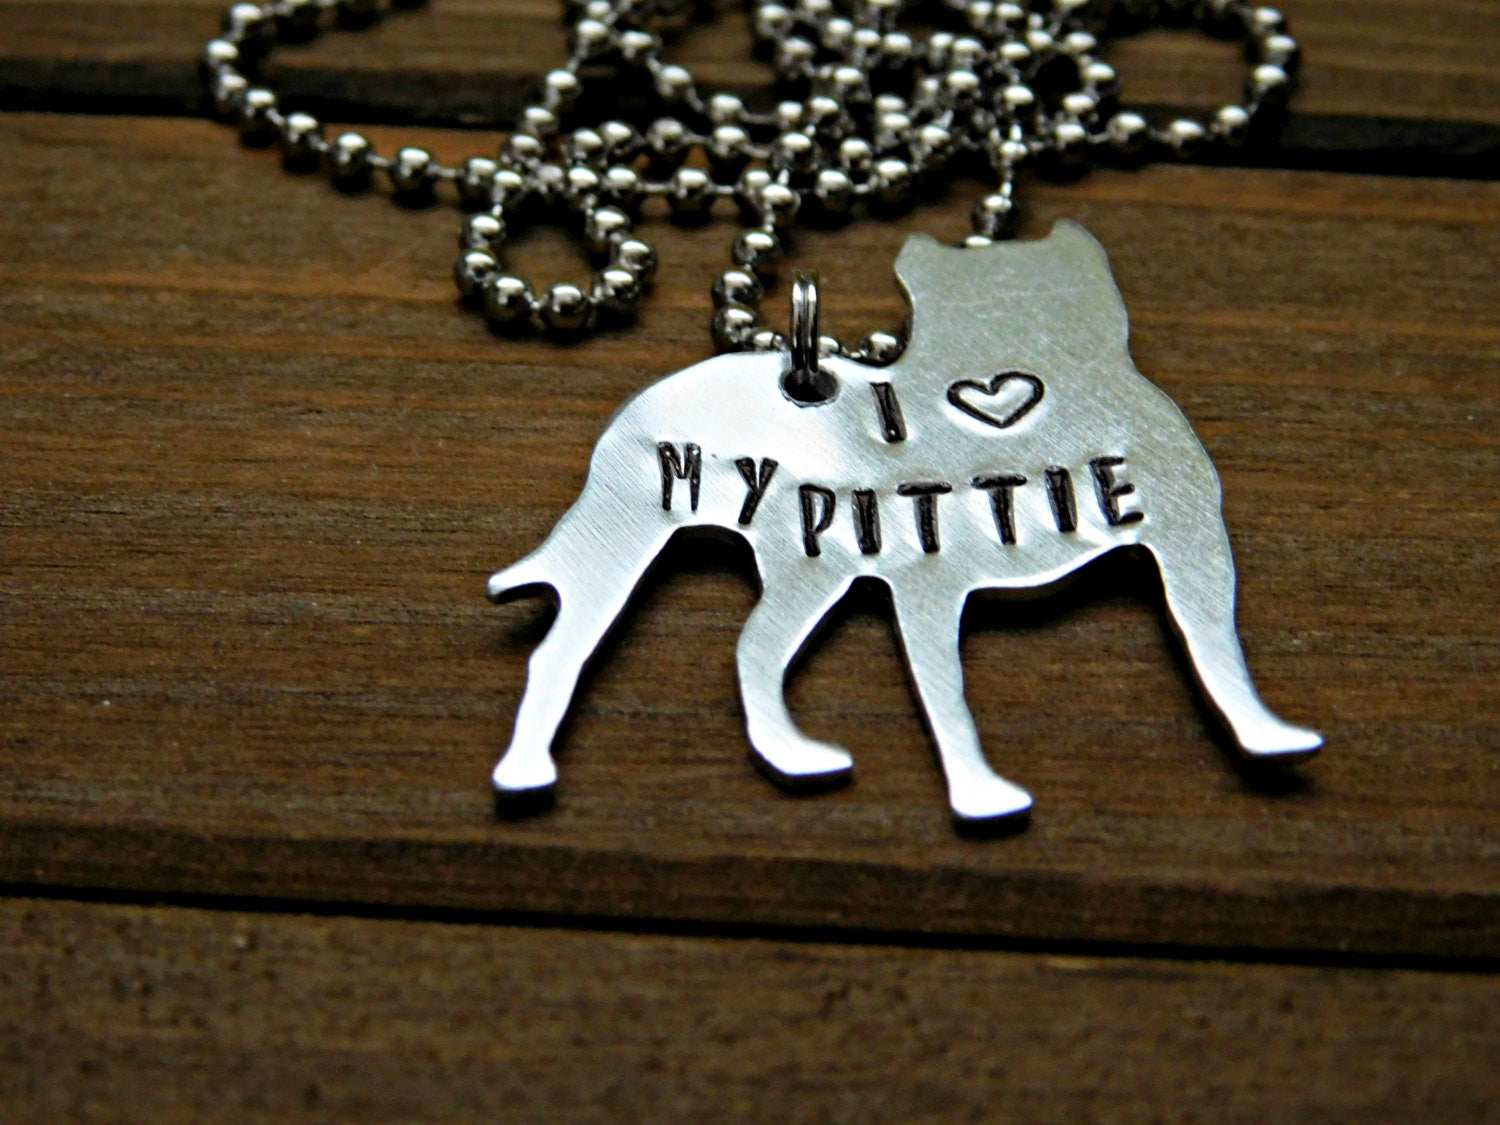 Pitbull Necklace Dog Lover Jewelry Pet I Love My Pittie Rescue BSL Custom Stamped Gift Adopt Bully